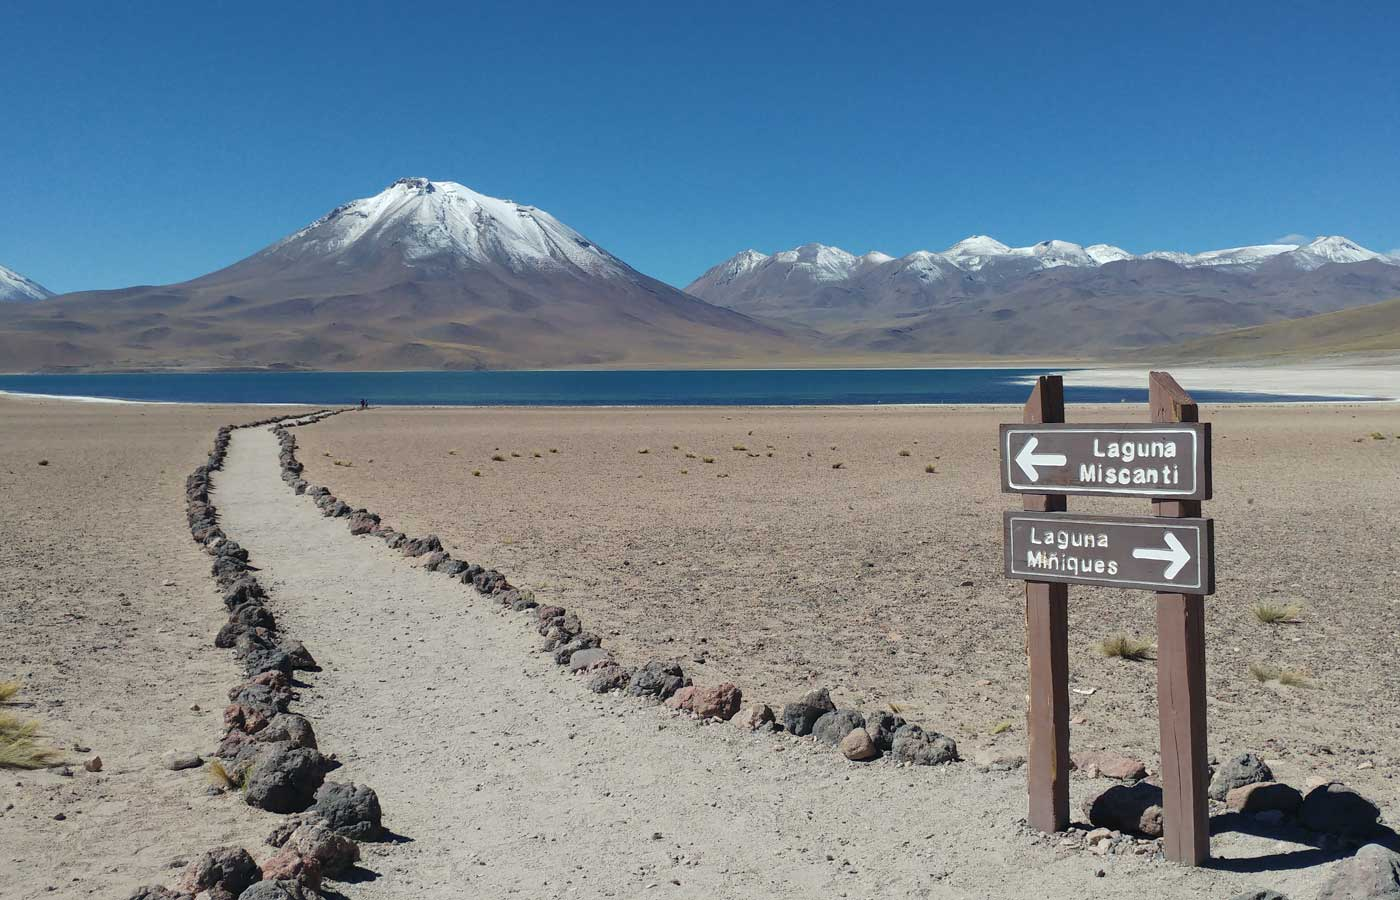 Miscanti and Miniques Lagoons in northern Chile